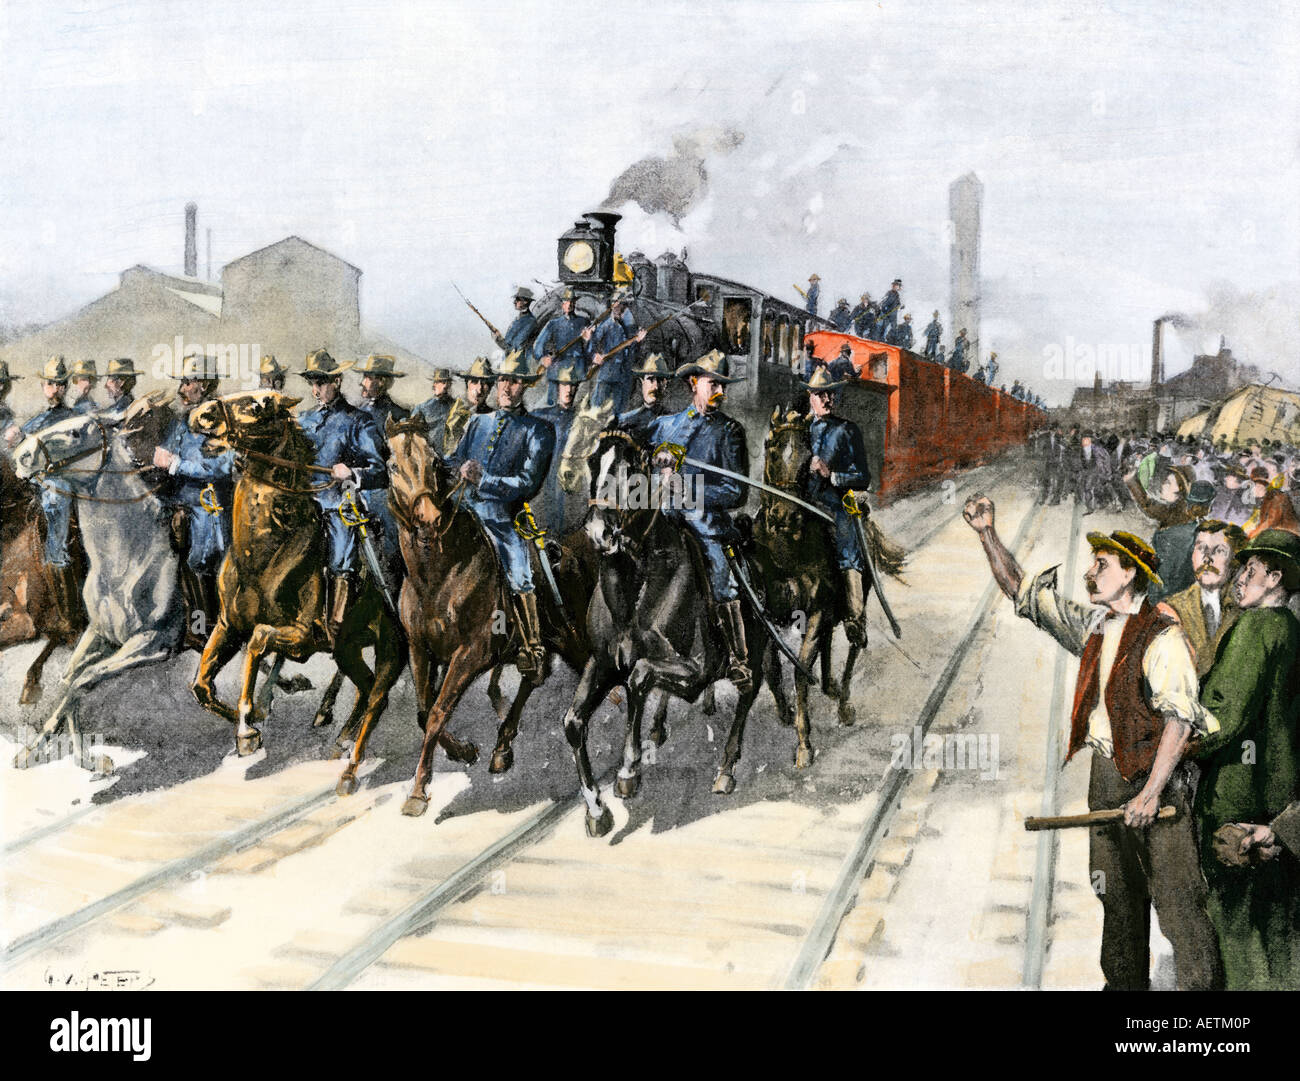 US Cavalry escorting a meat train from the Chicago Stockyards during the Pullman Strike 1894. Hand-colored halftone - Stock Image